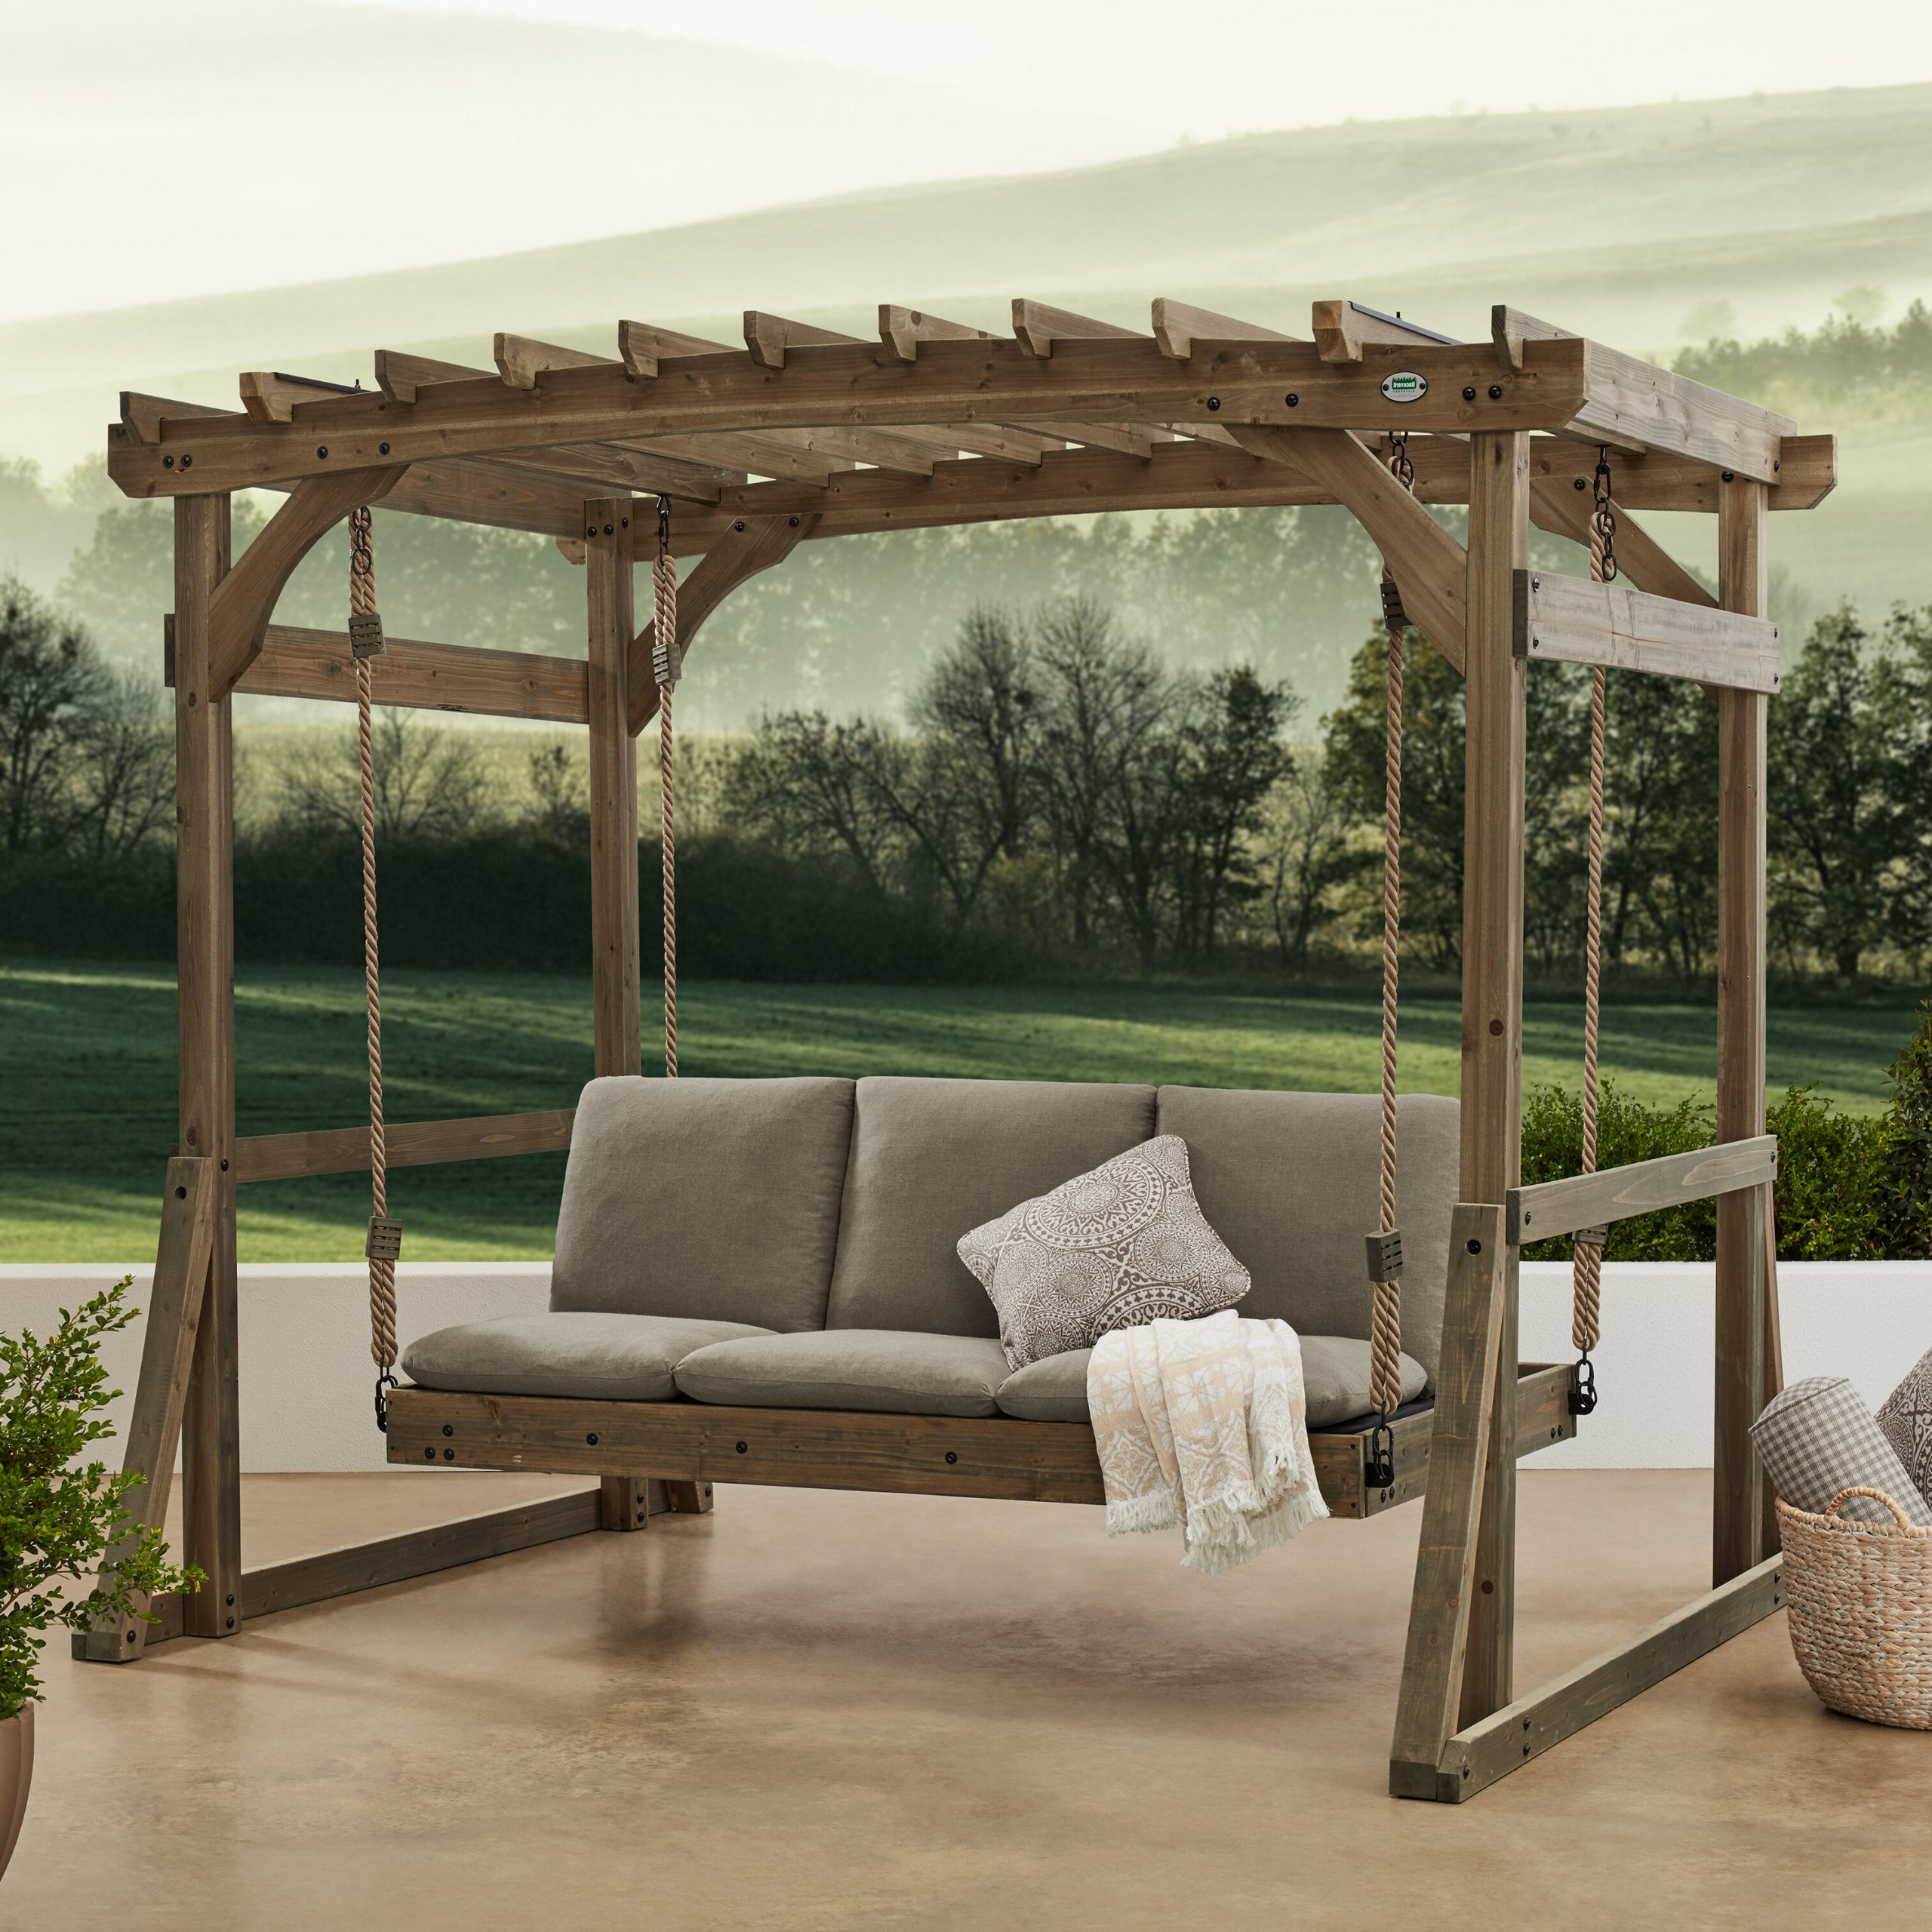 Trendy Pergola Porch Swings With Stand Within Claremont Pergola Lounger Porch Swing With Stand (View 10 of 25)